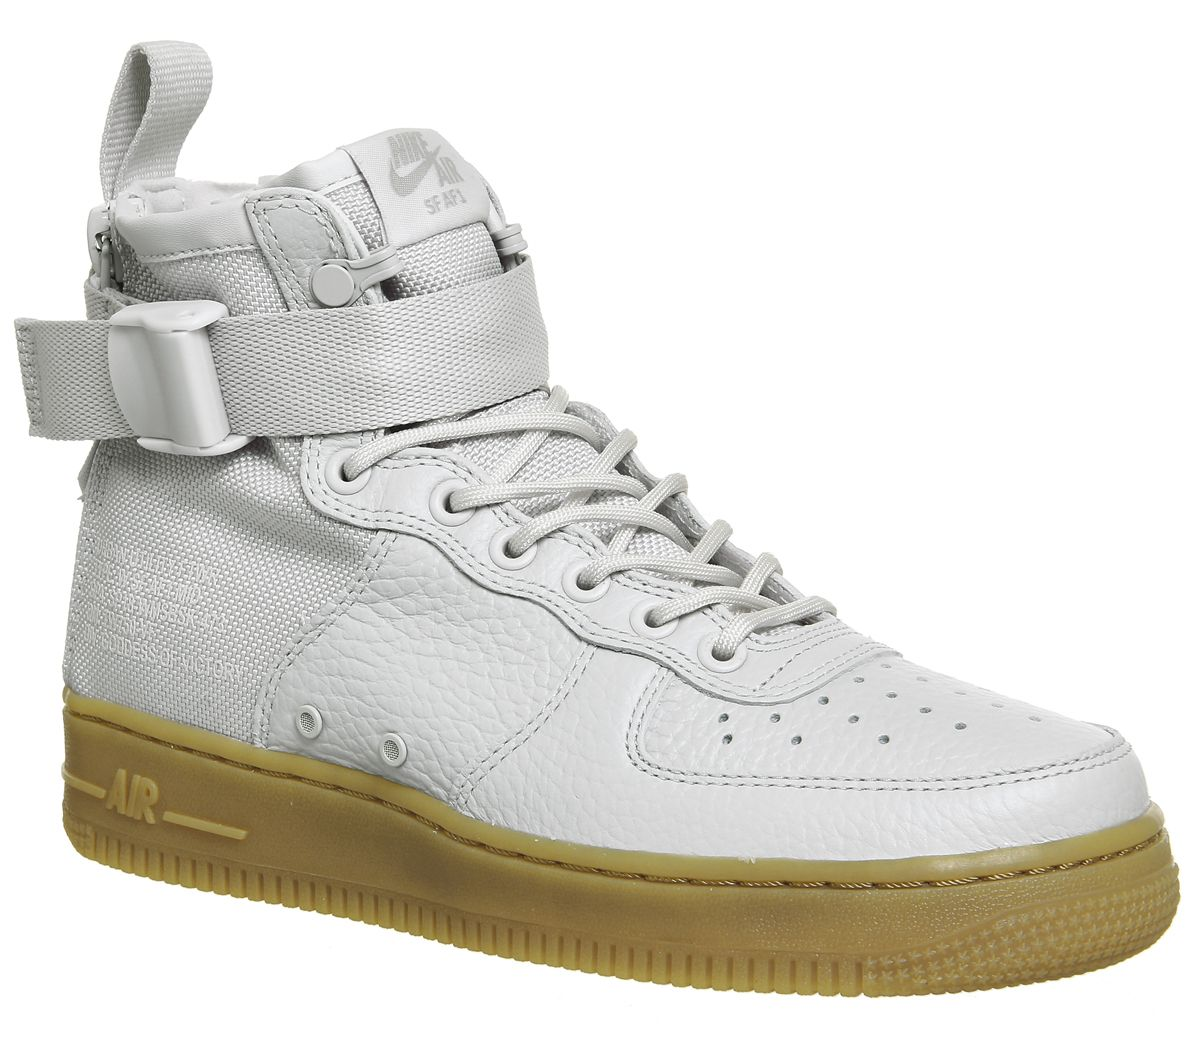 check out f4608 78fcb Sf Af1 Mid 17